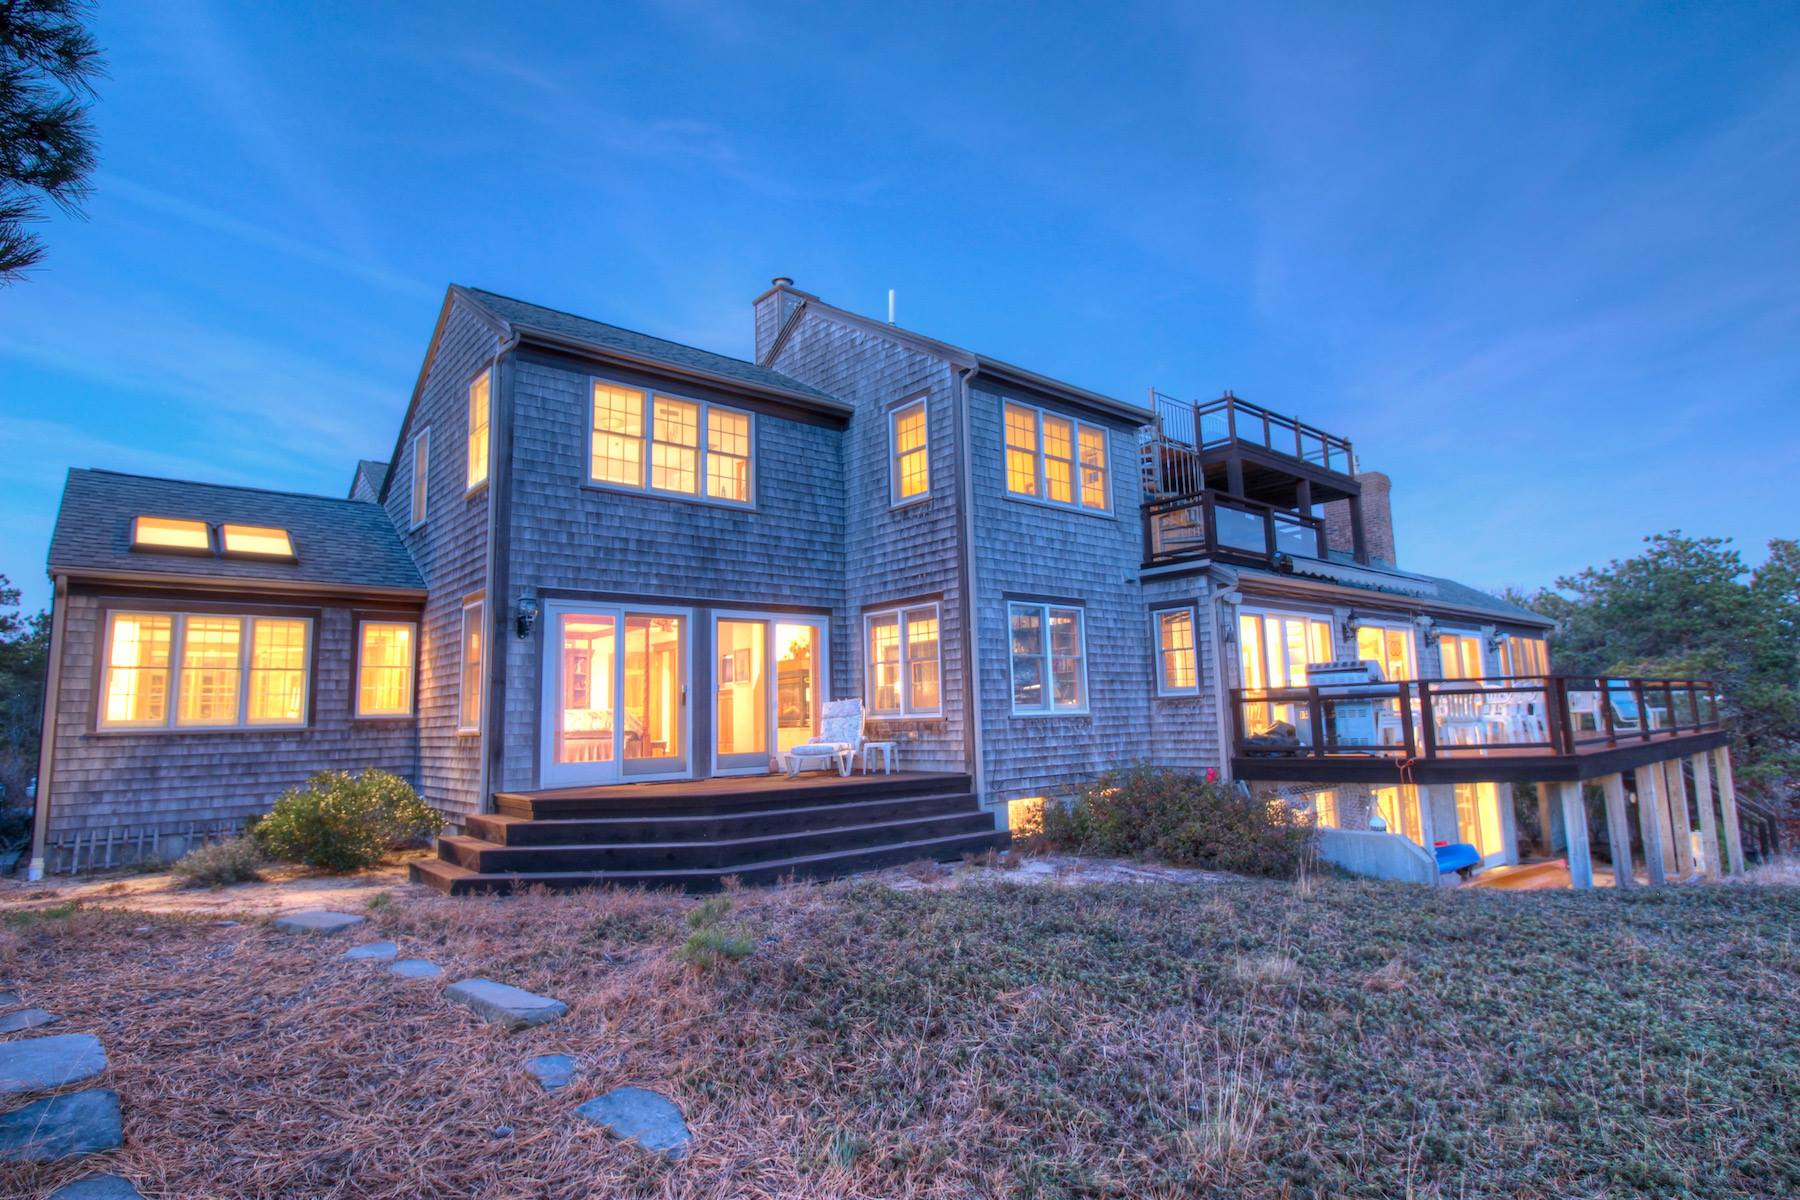 Property For Sale at 615 Chequessett Neck Road, Wellfleet, MA